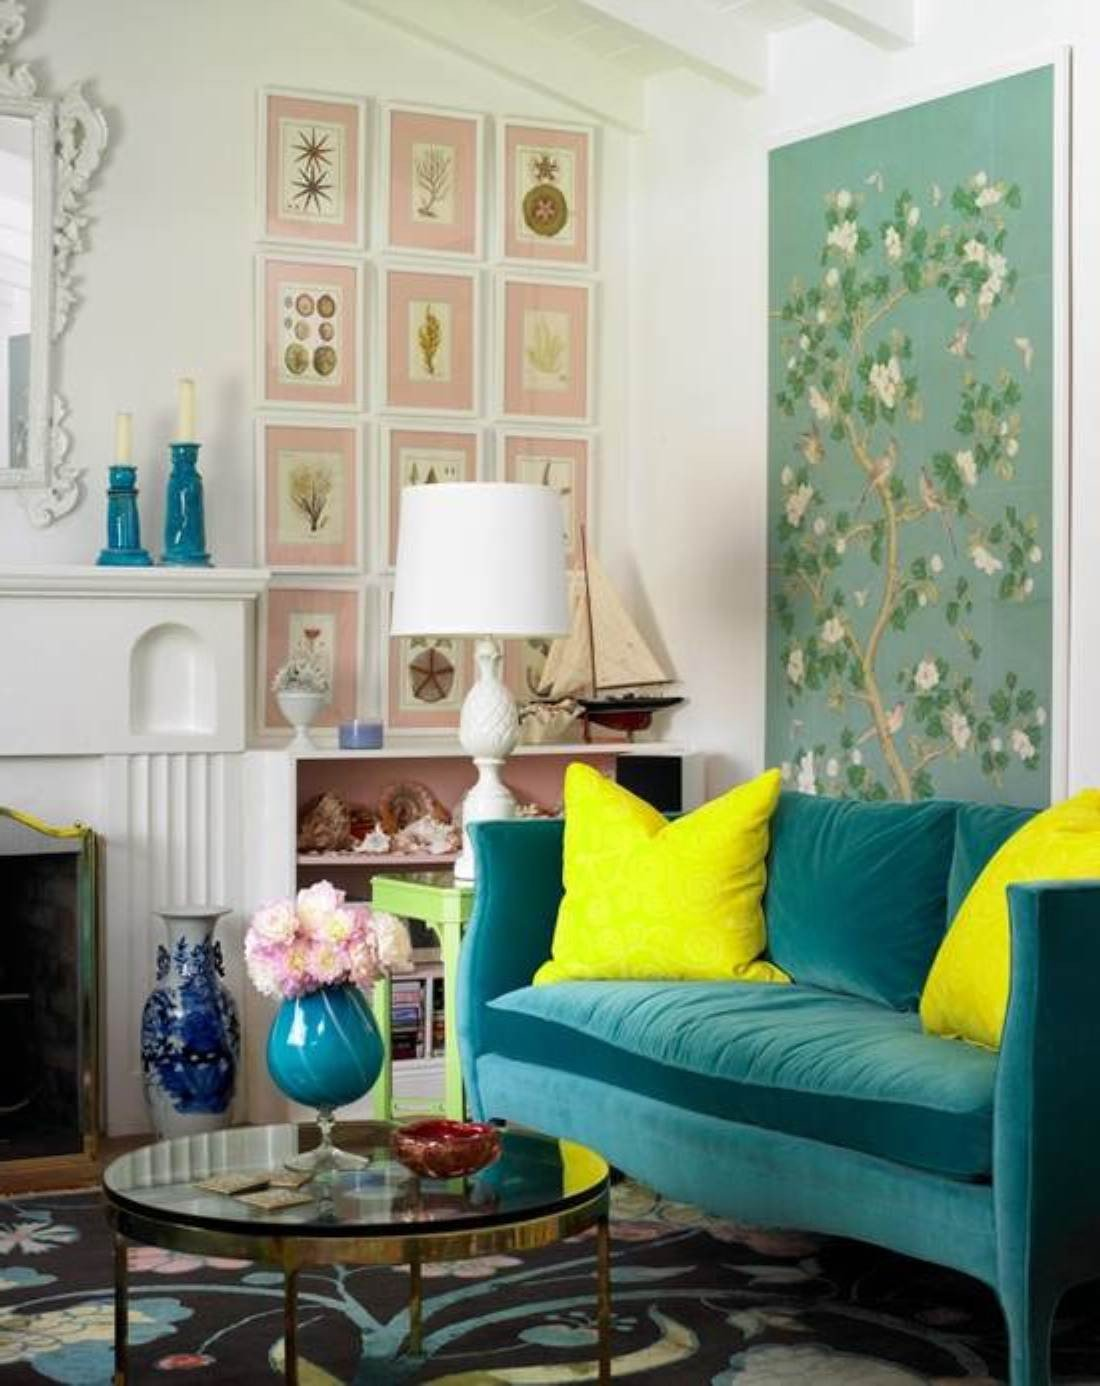 Living Room Ideasfor Small Spaces Beautiful 30 Amazing Small Spaces Living Room Design Ideas Decoration Love